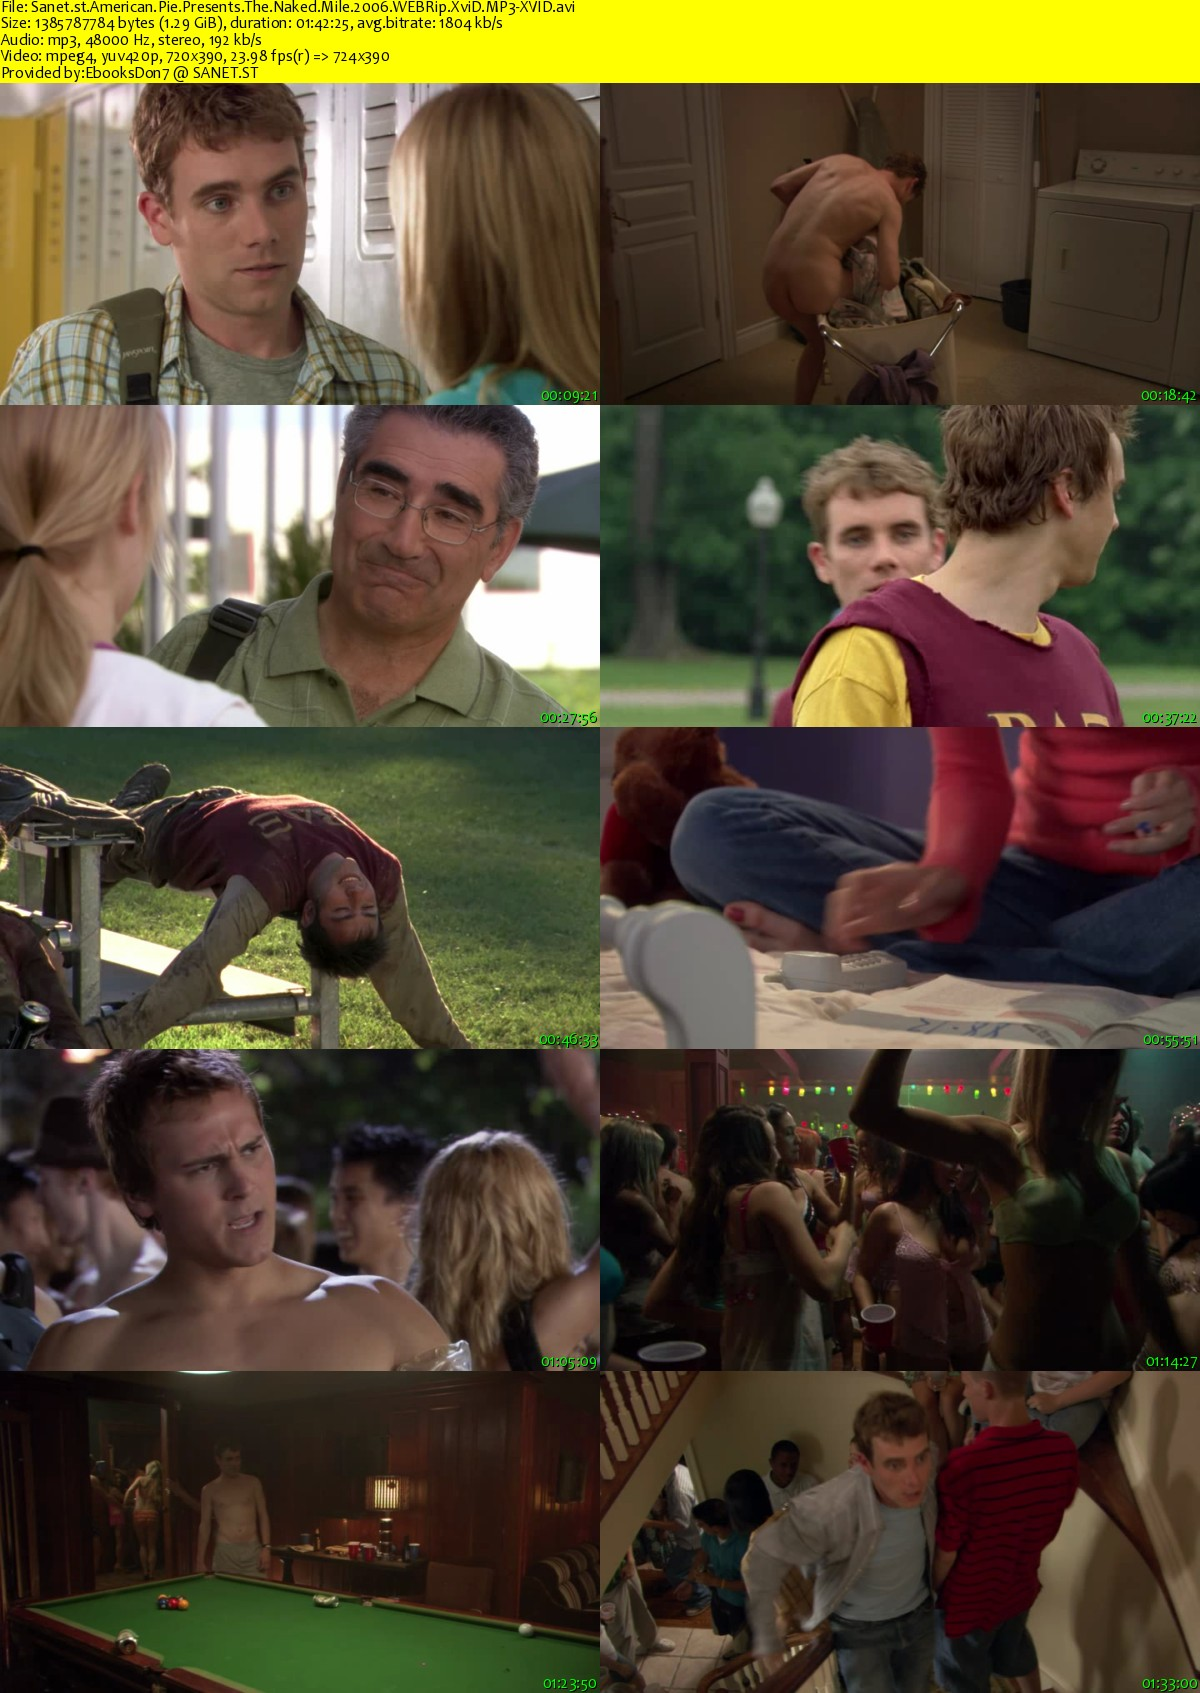 American Pie Screenshots download american pie presents the naked mile 2006 webrip